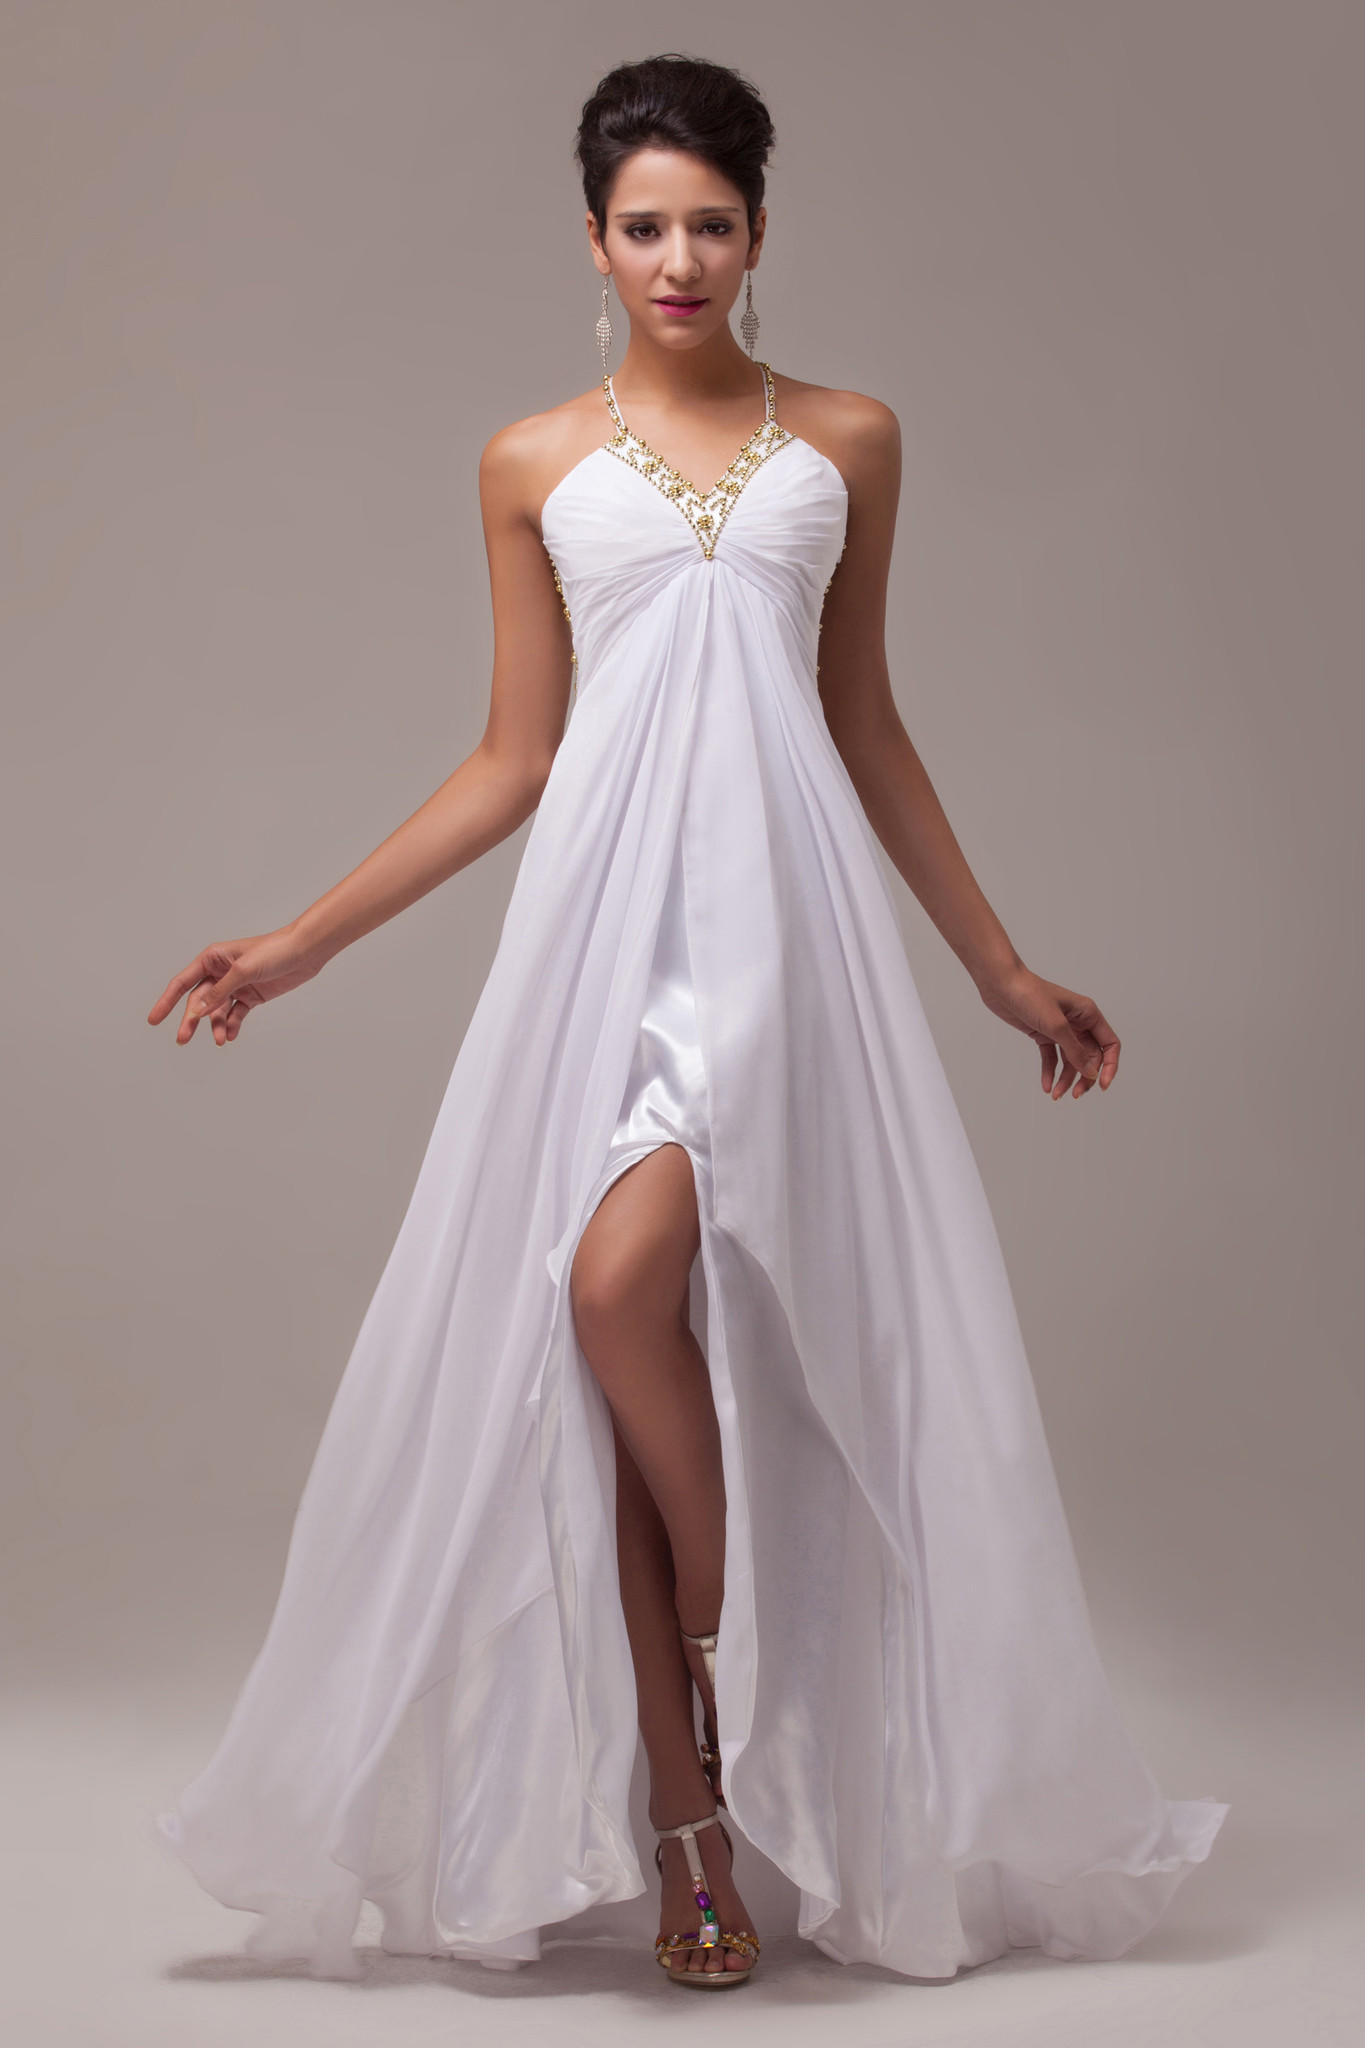 Collection White Chiffon Maxi Dress Pictures - Reikian